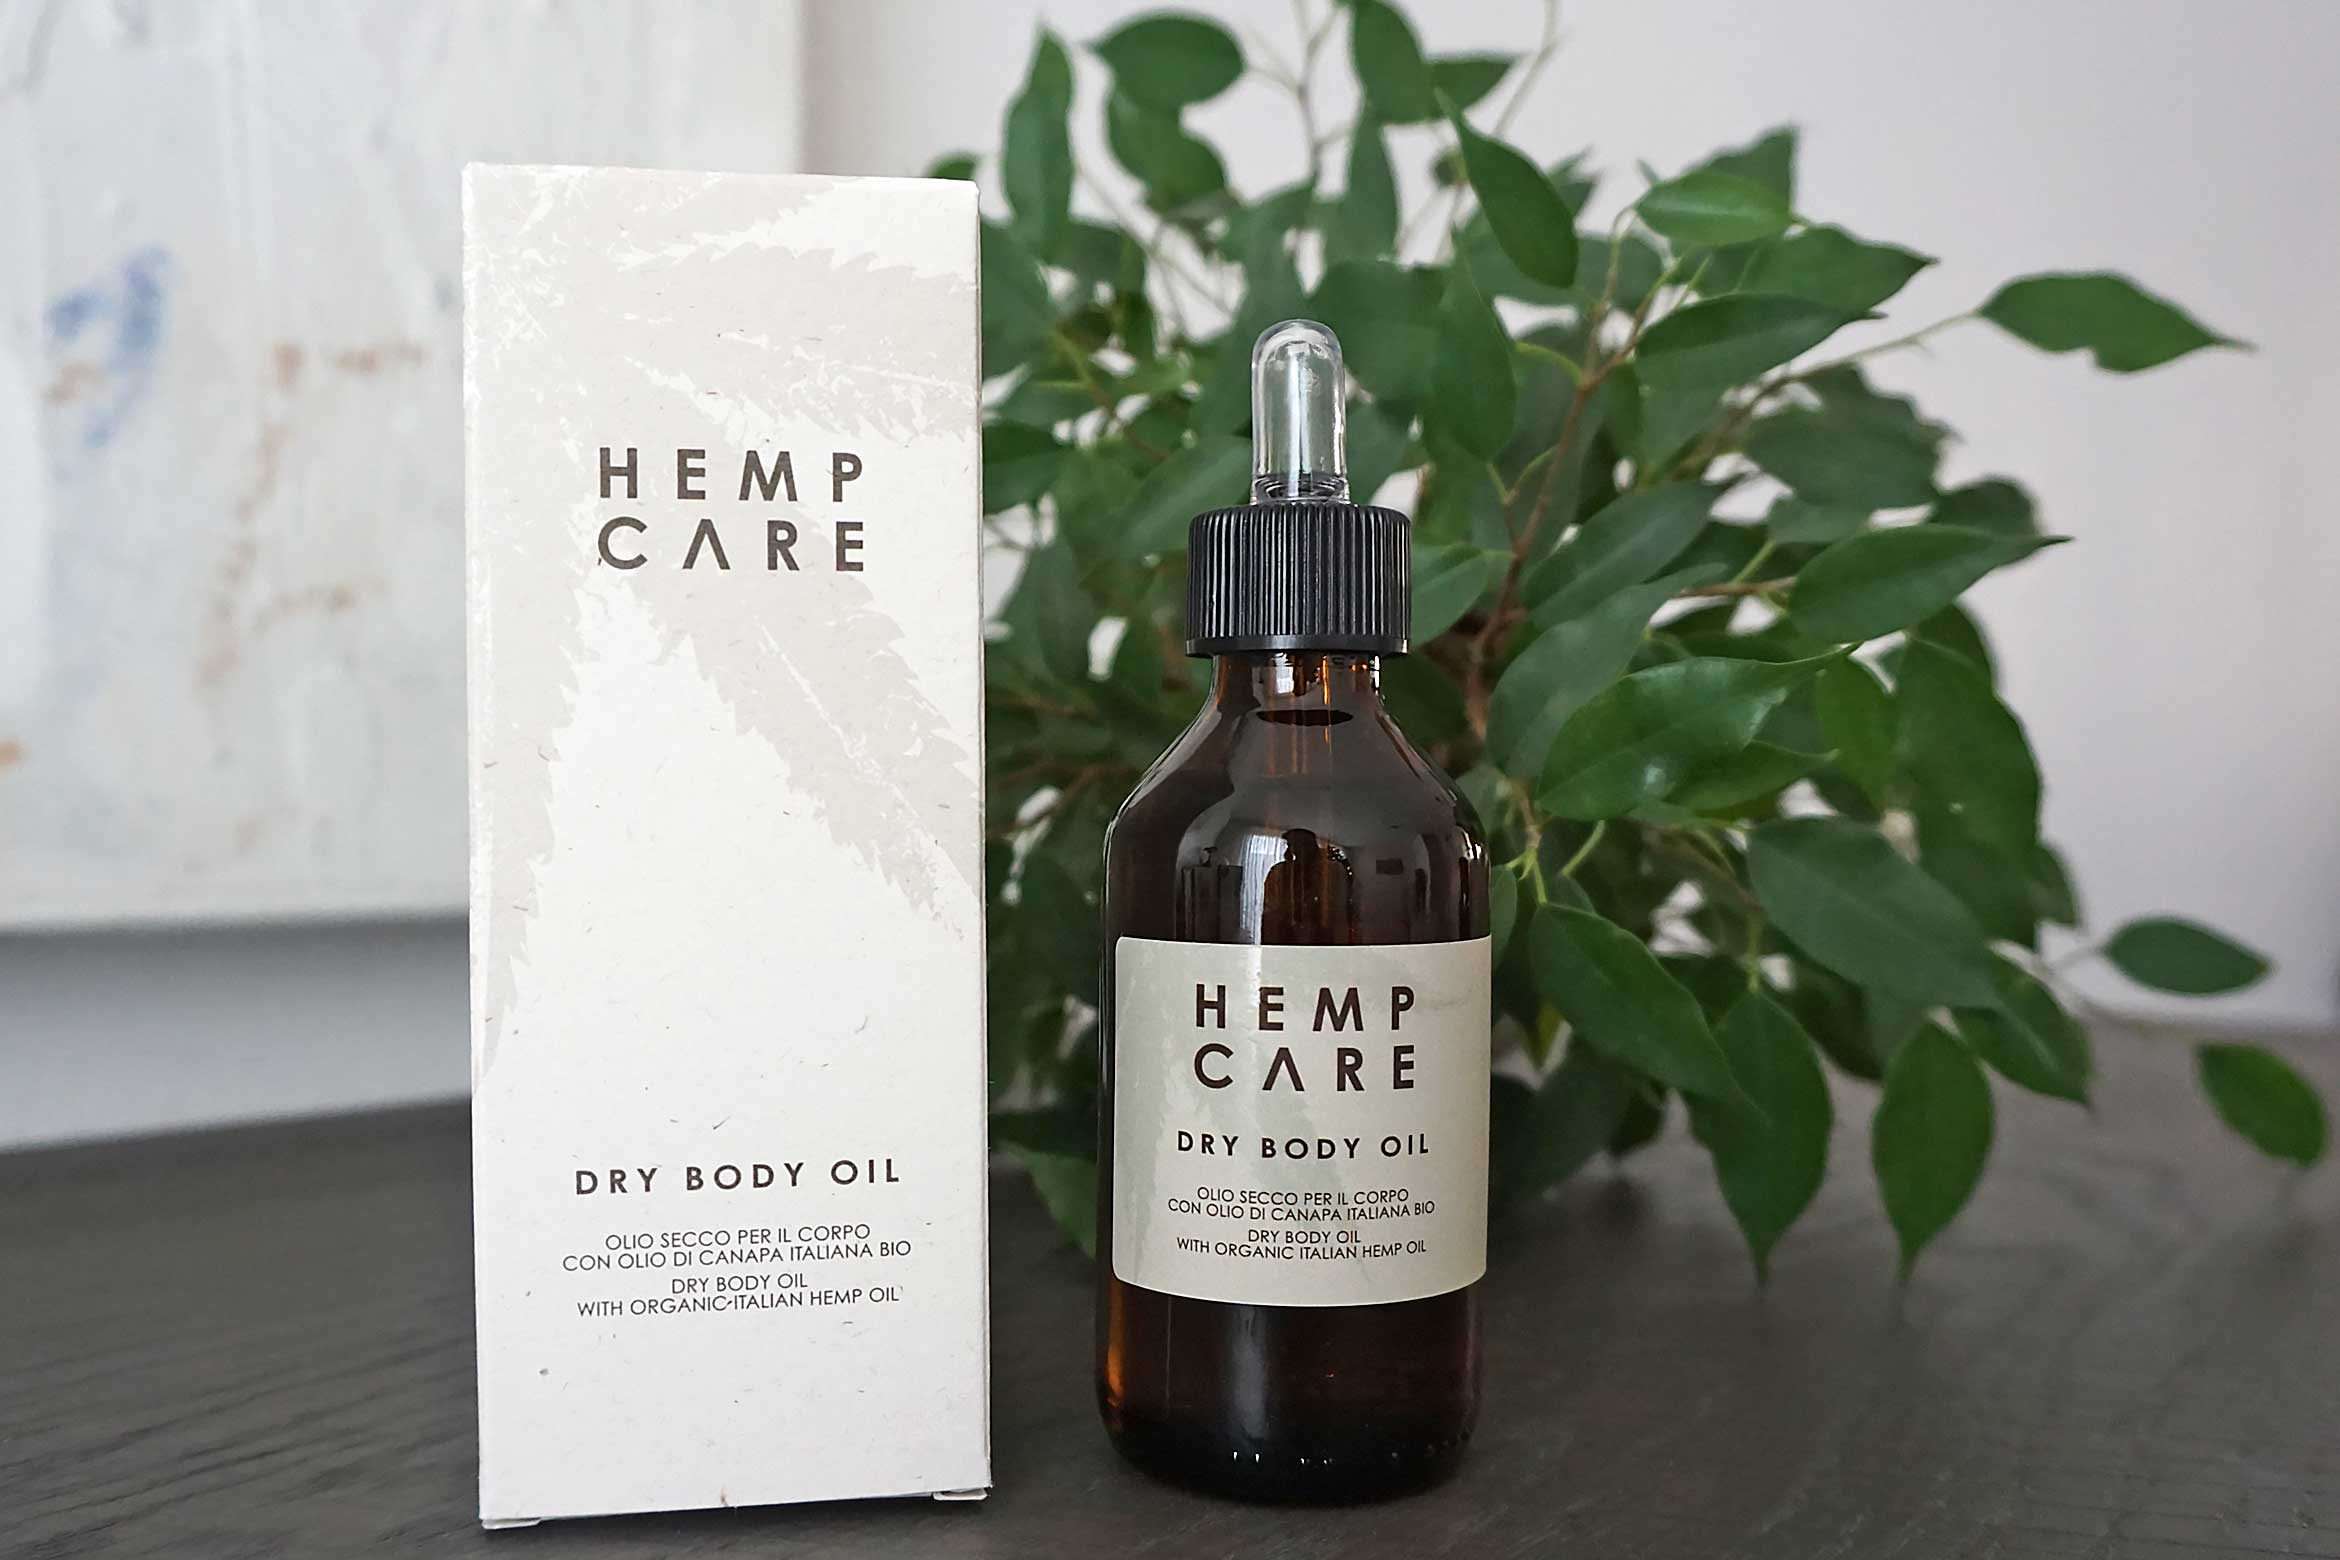 hemp care dry body oil review